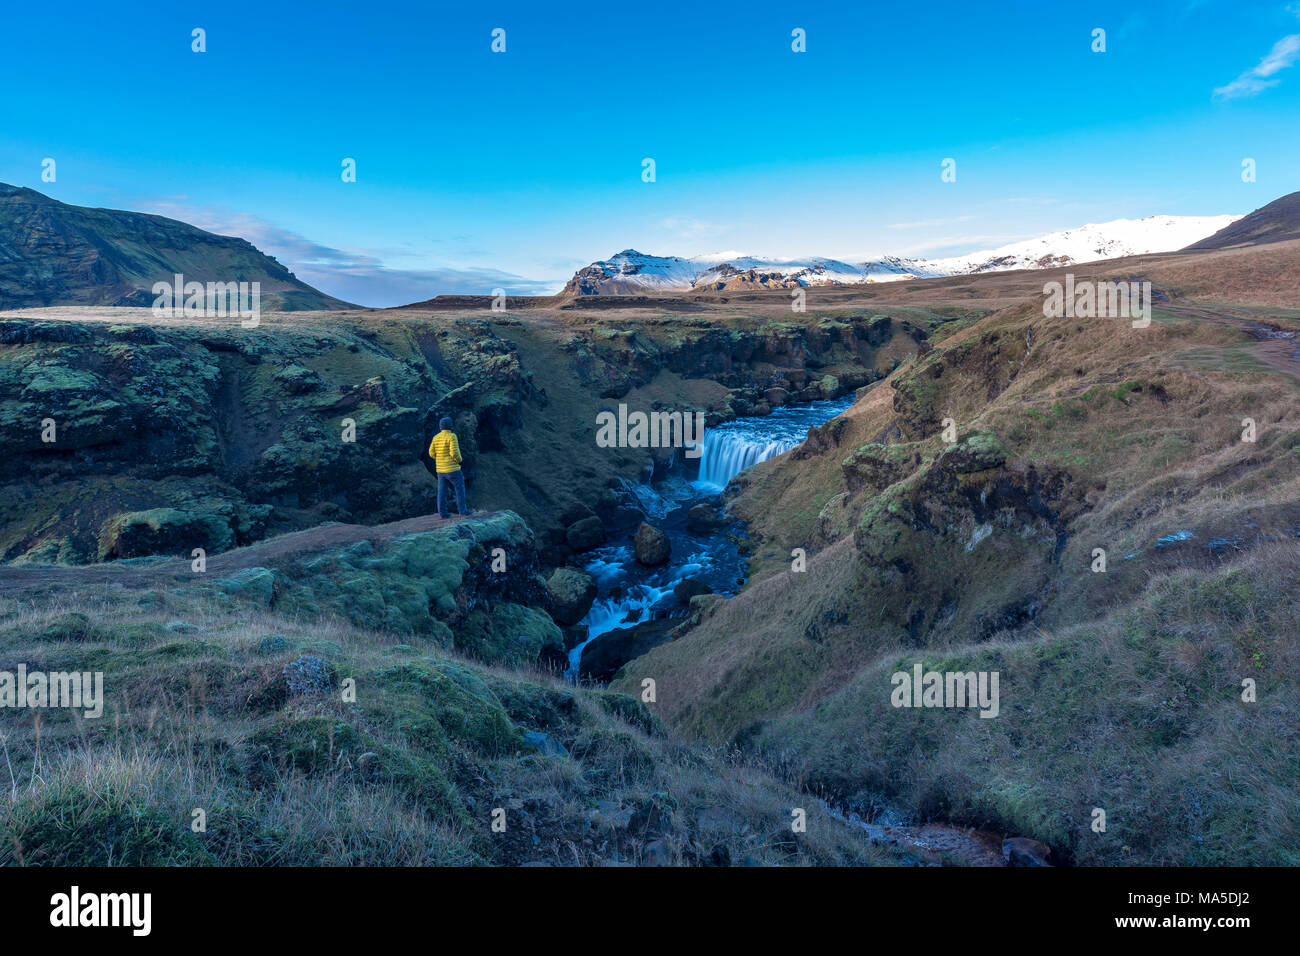 Europe, Northern Europe, Iceland, Skógar, view to the impressive landscape on the Fimmvörduhals trail - Stock Image